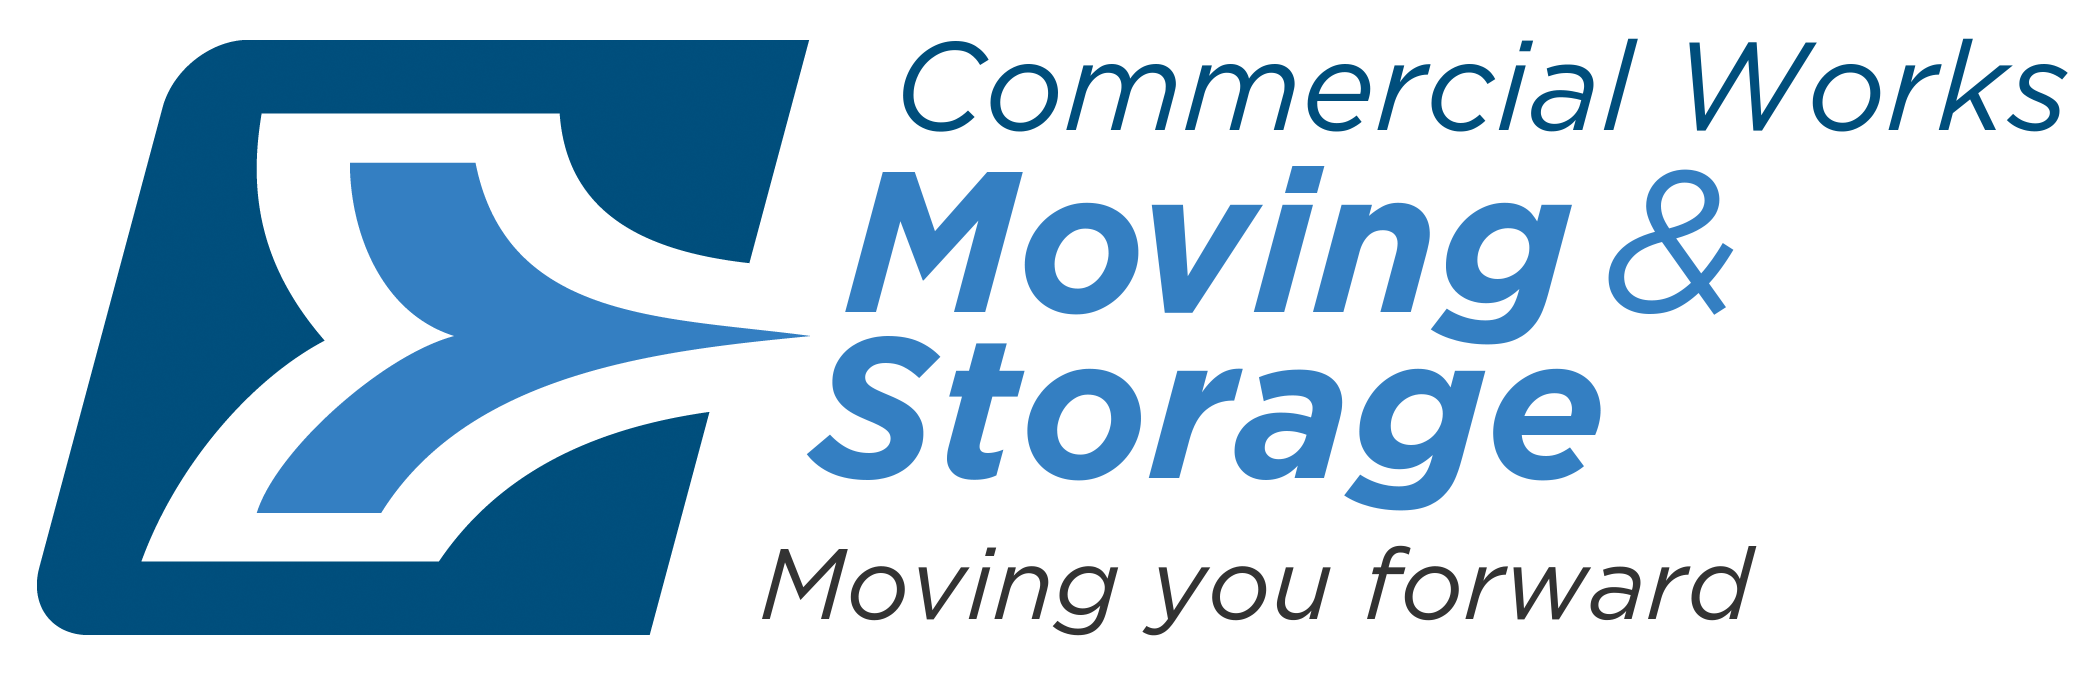 Commercial Works Moving & Storage Logo